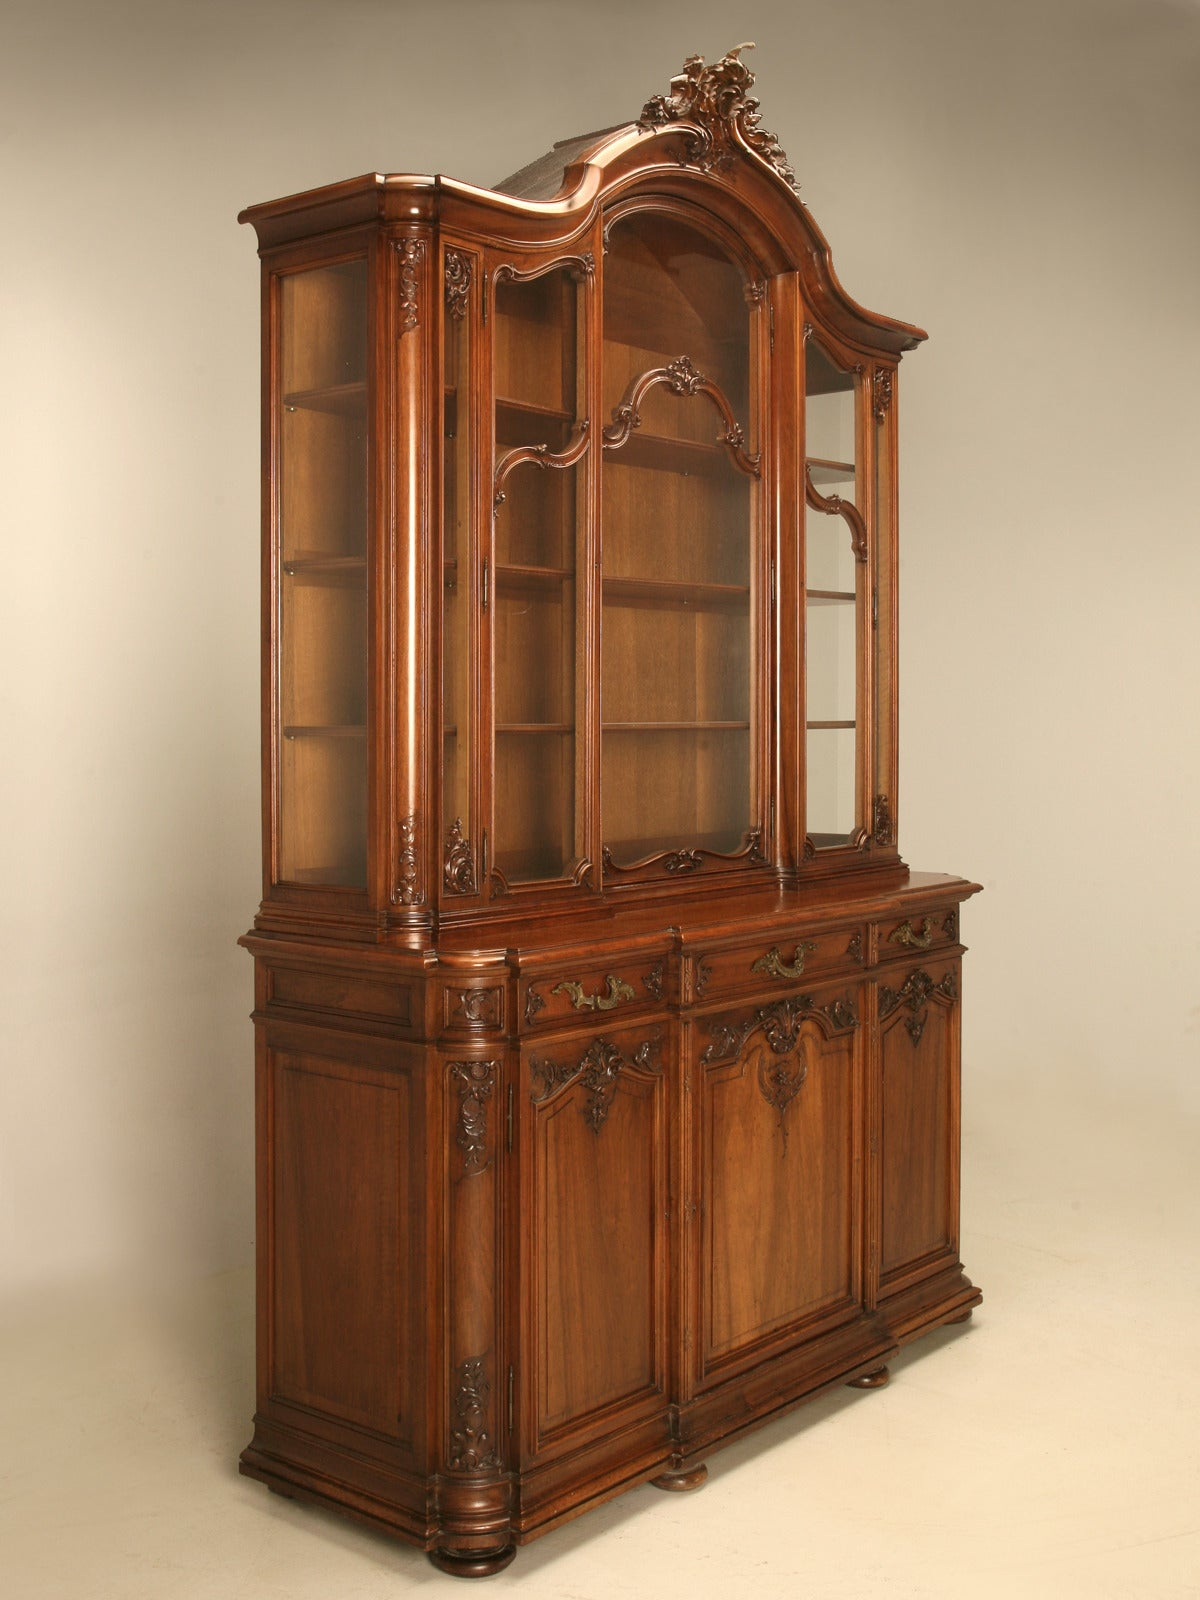 Antique french walnut china cabinet from ch jeanselme and c paris at 1stdibs - Cabinet medical paris 15 ...